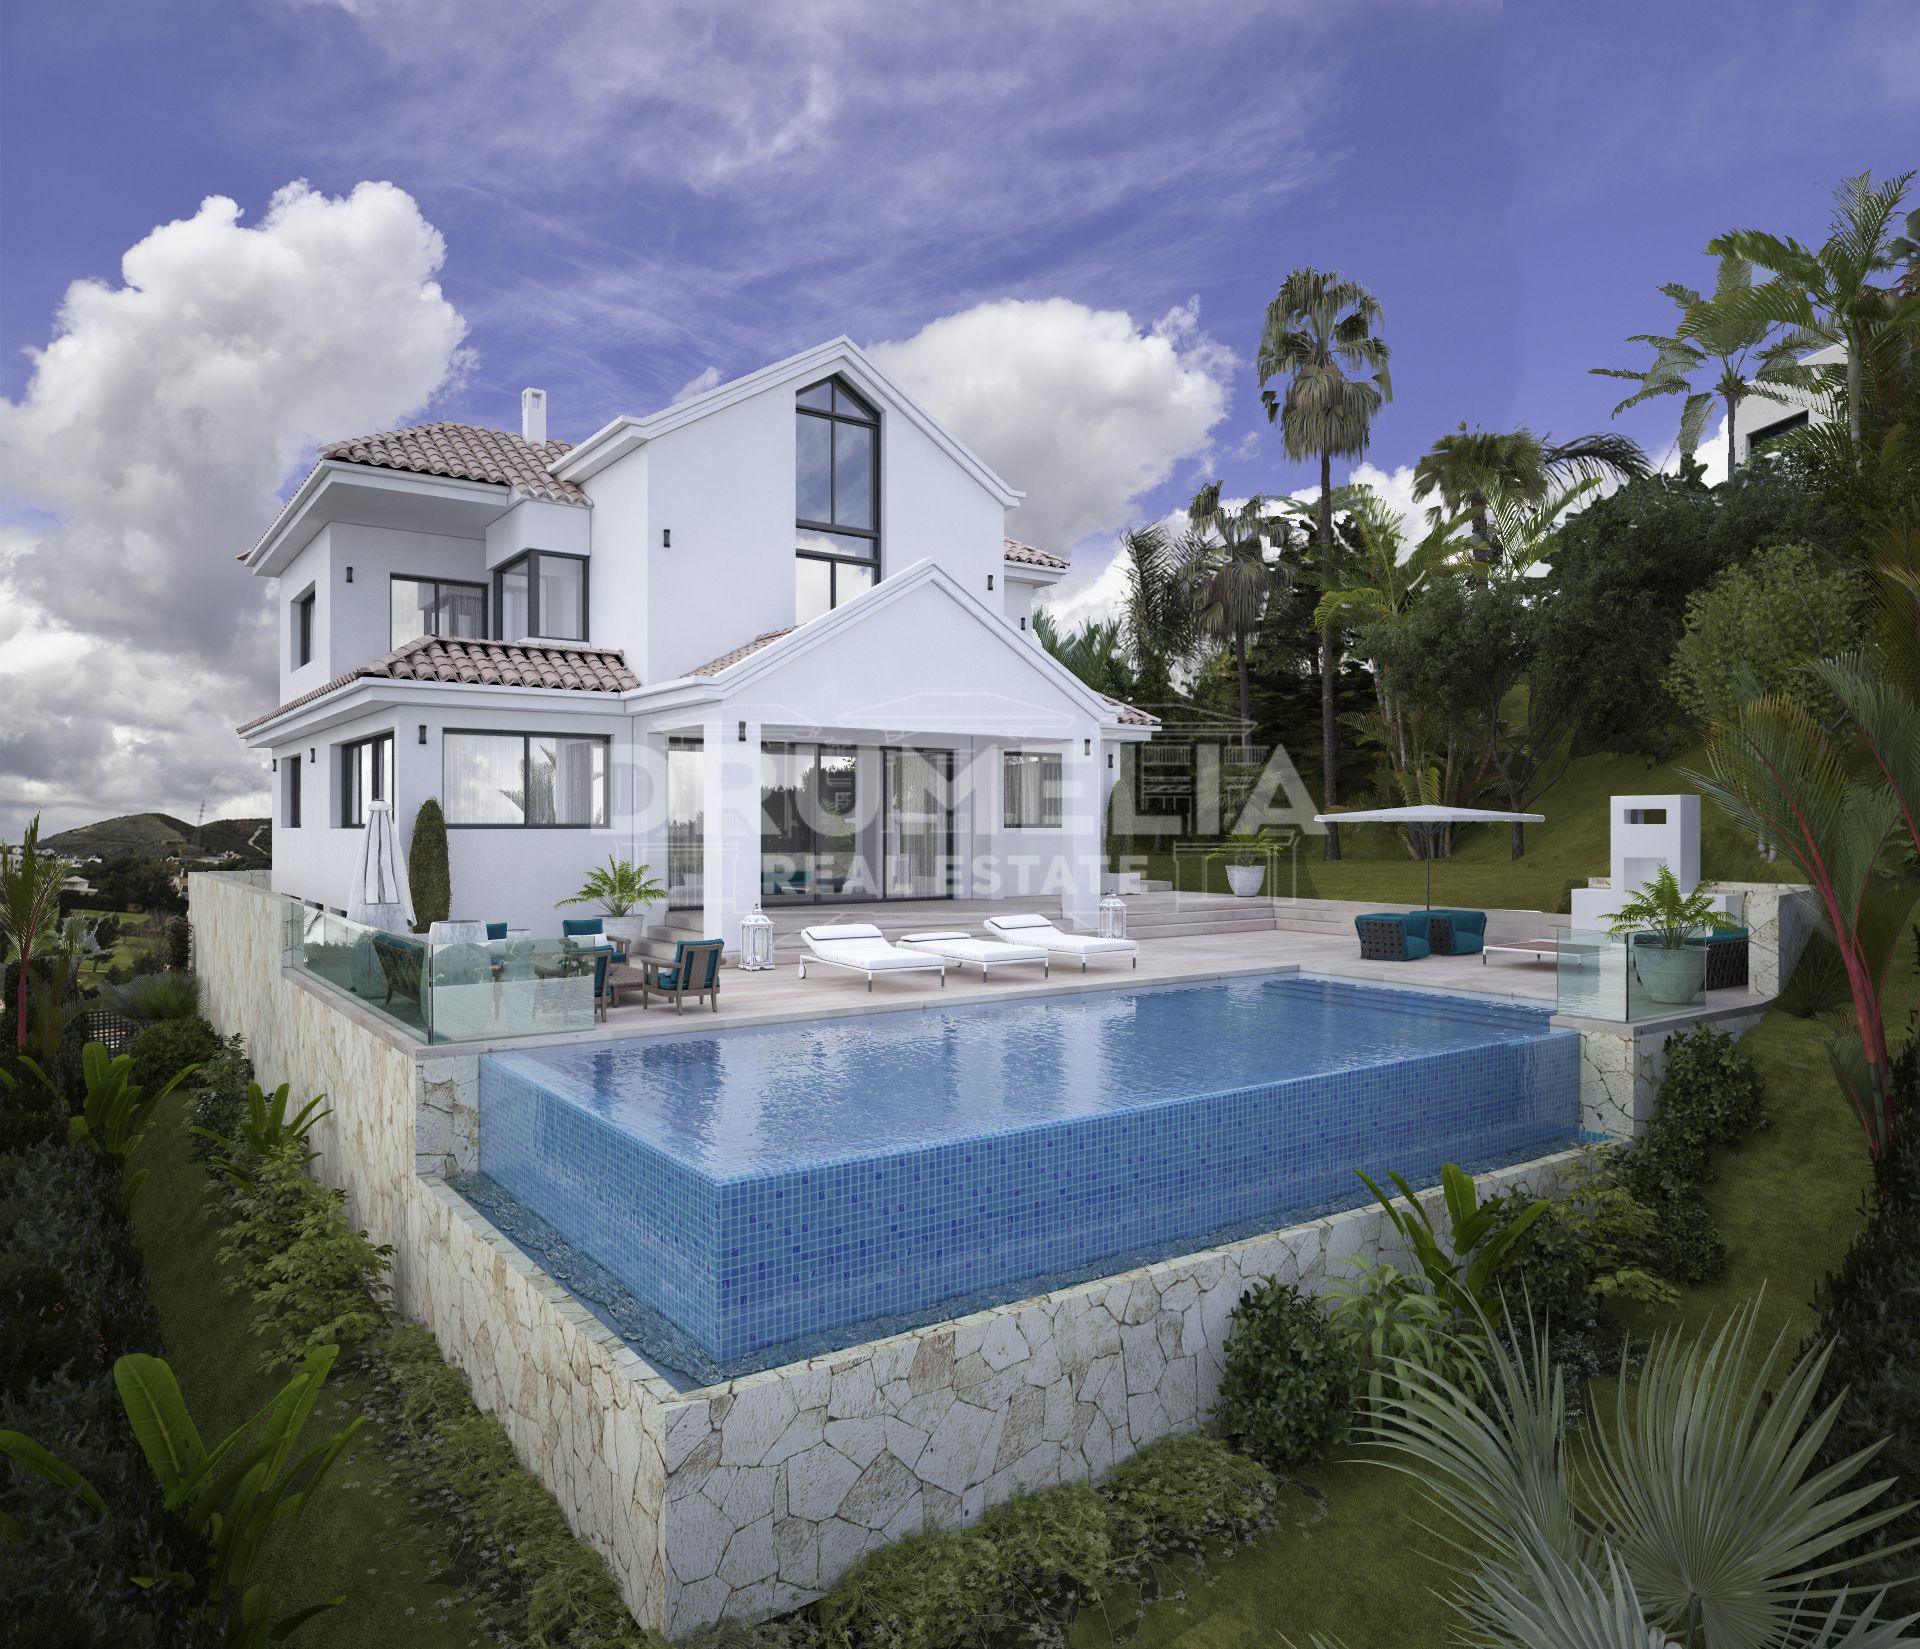 Benahavis, Superb Plot with Modern Luxury Villa Project, Capanes Sur, Benahavis